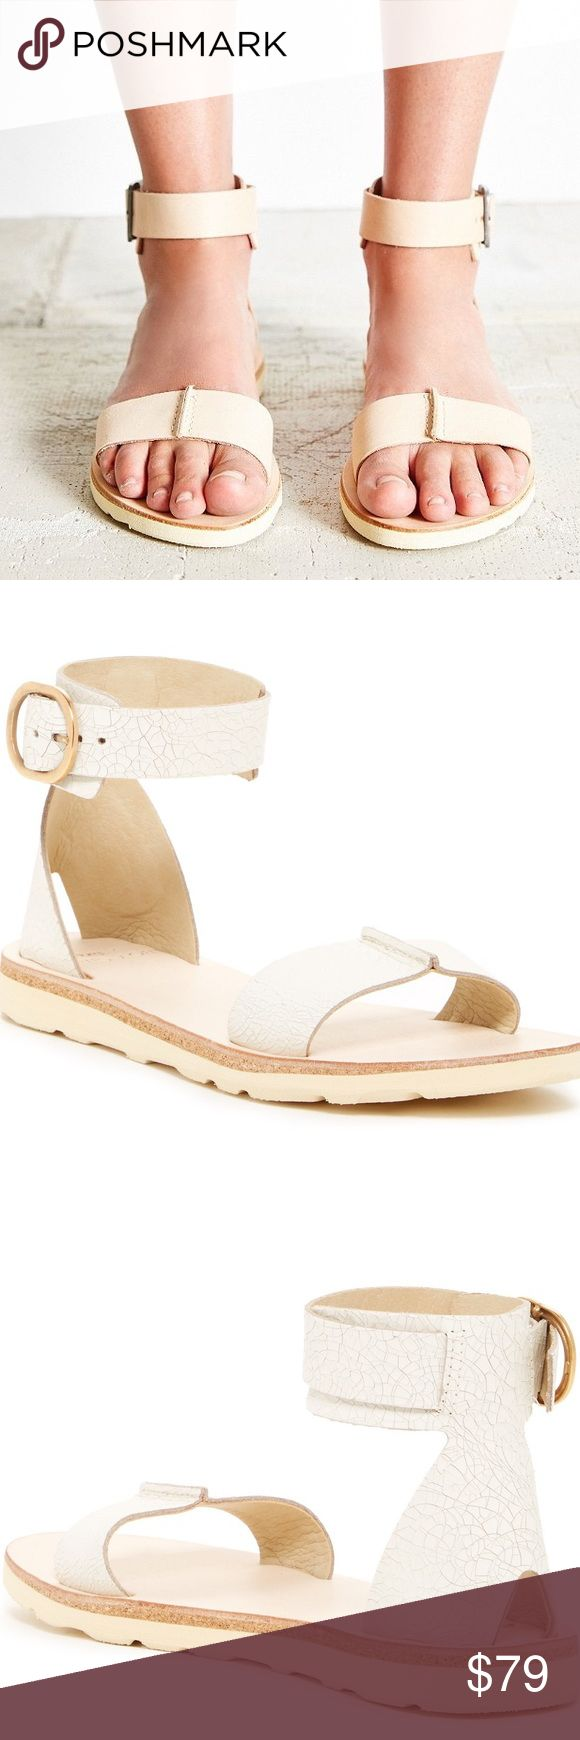 REEF 'Voyage' Sandal (NEW) NEW with tags/no box.   True to size.   - Open toe - Vamp strap with split seam - Textured leather construction - Adjustable buckle ankle strap  - Grip sole - Imported Materials Leather upper, leather lining, manmade sole Reef Shoes Sandals